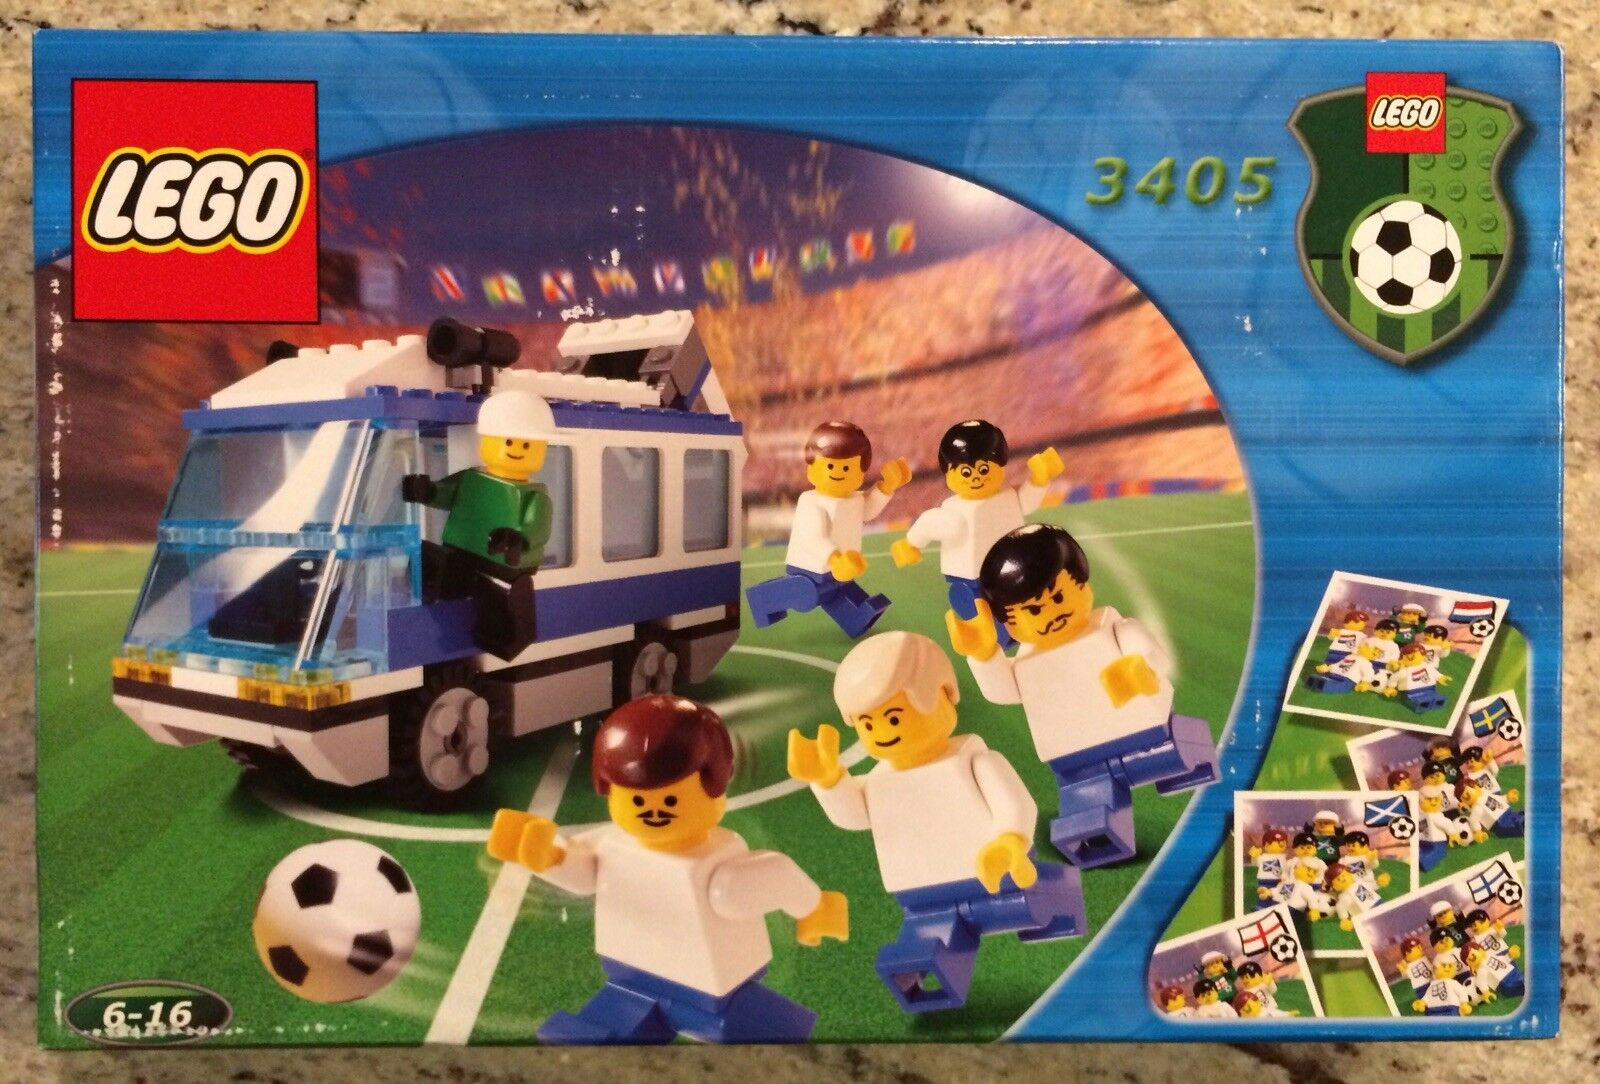 LEGO 3405 Sports Americas Team bluee Bus, Soccer Team, New In Sealed Box